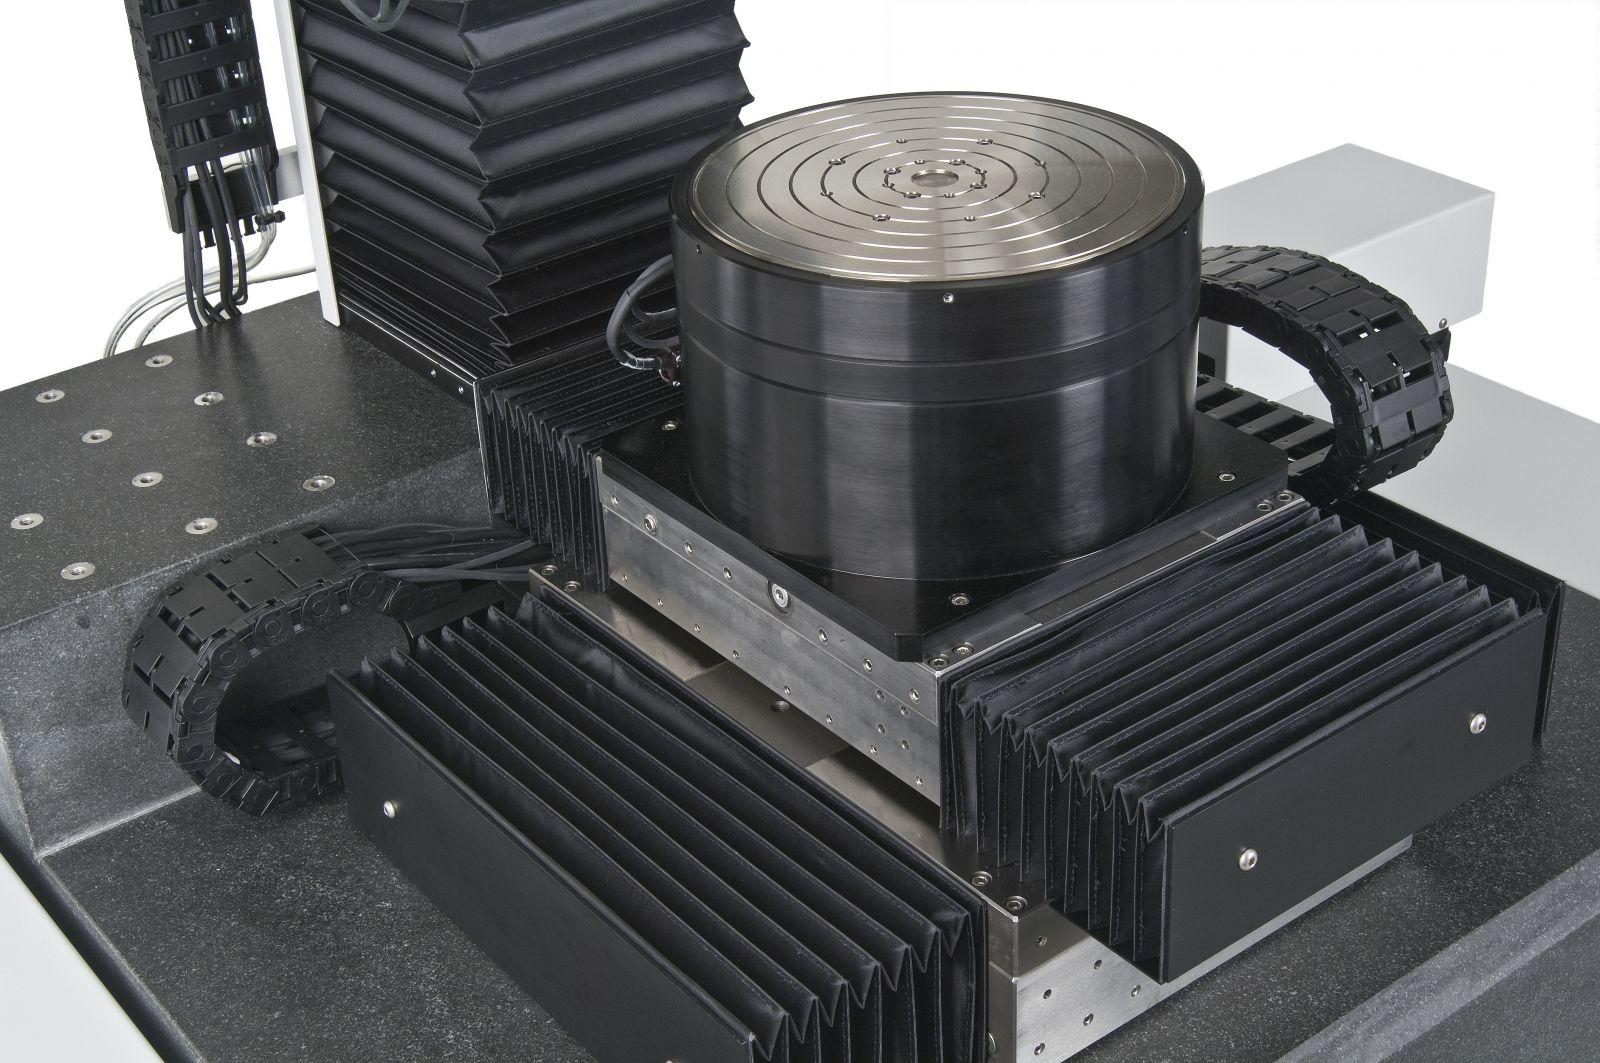 Air Bearing Rotary Table ABTech Designs Optical Metrology Station with 5 Axes of Motion